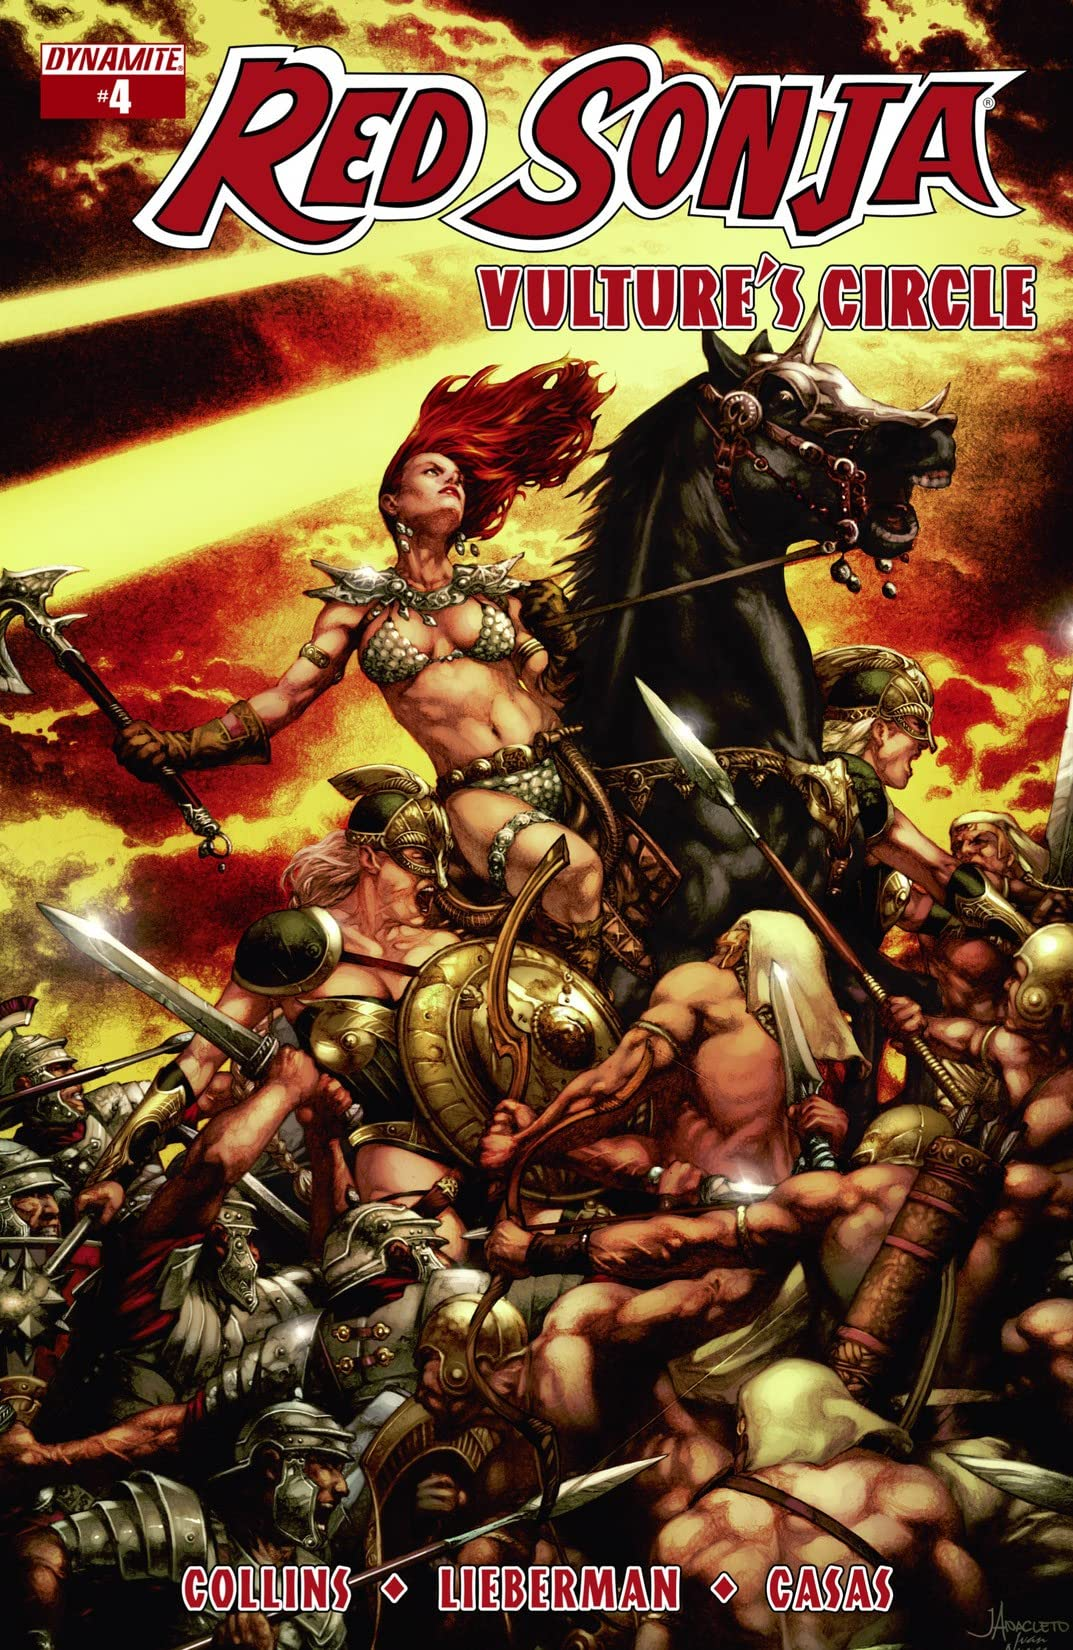 Red Sonja: Vulture's Circle #4: Digital Exclusive Edition